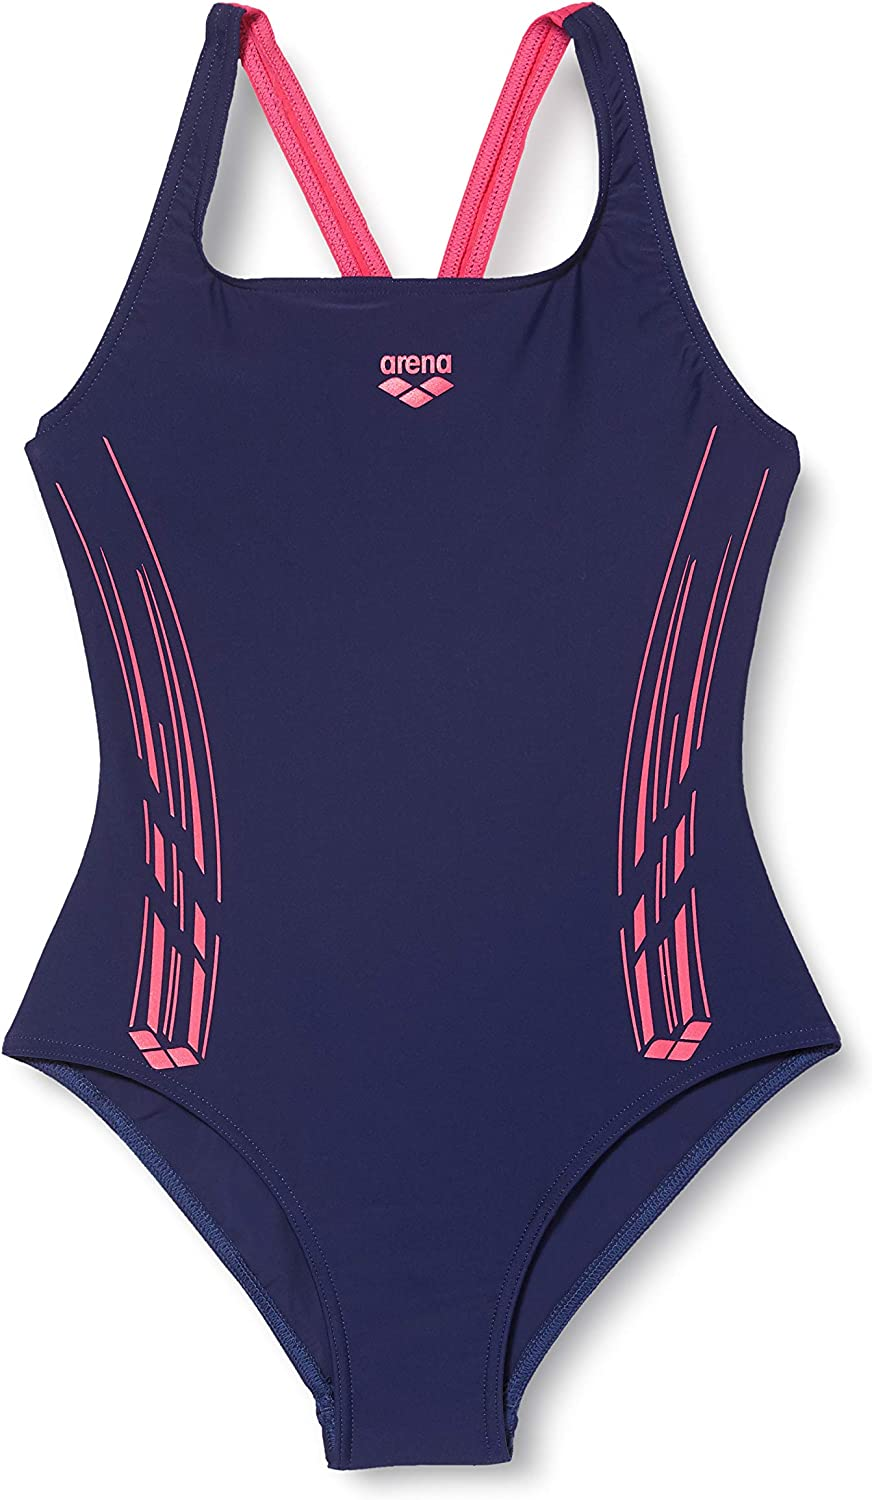 Arena Womens Women Sports Swimsuit Stamp Swimsuit